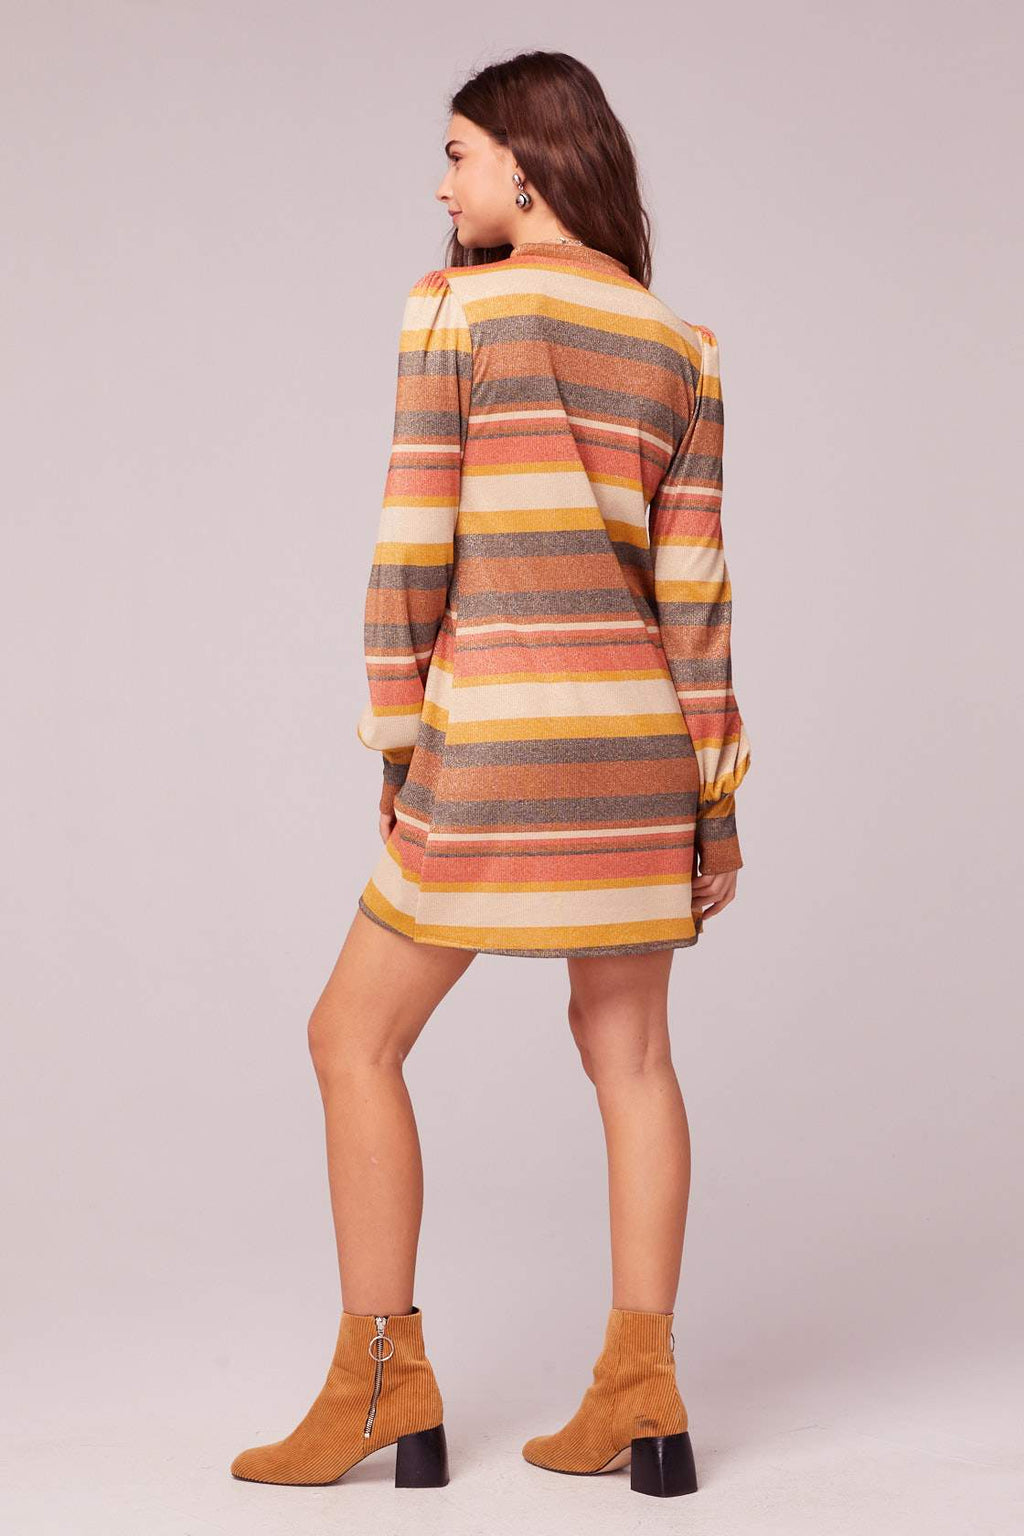 Dazed and Confused Dress